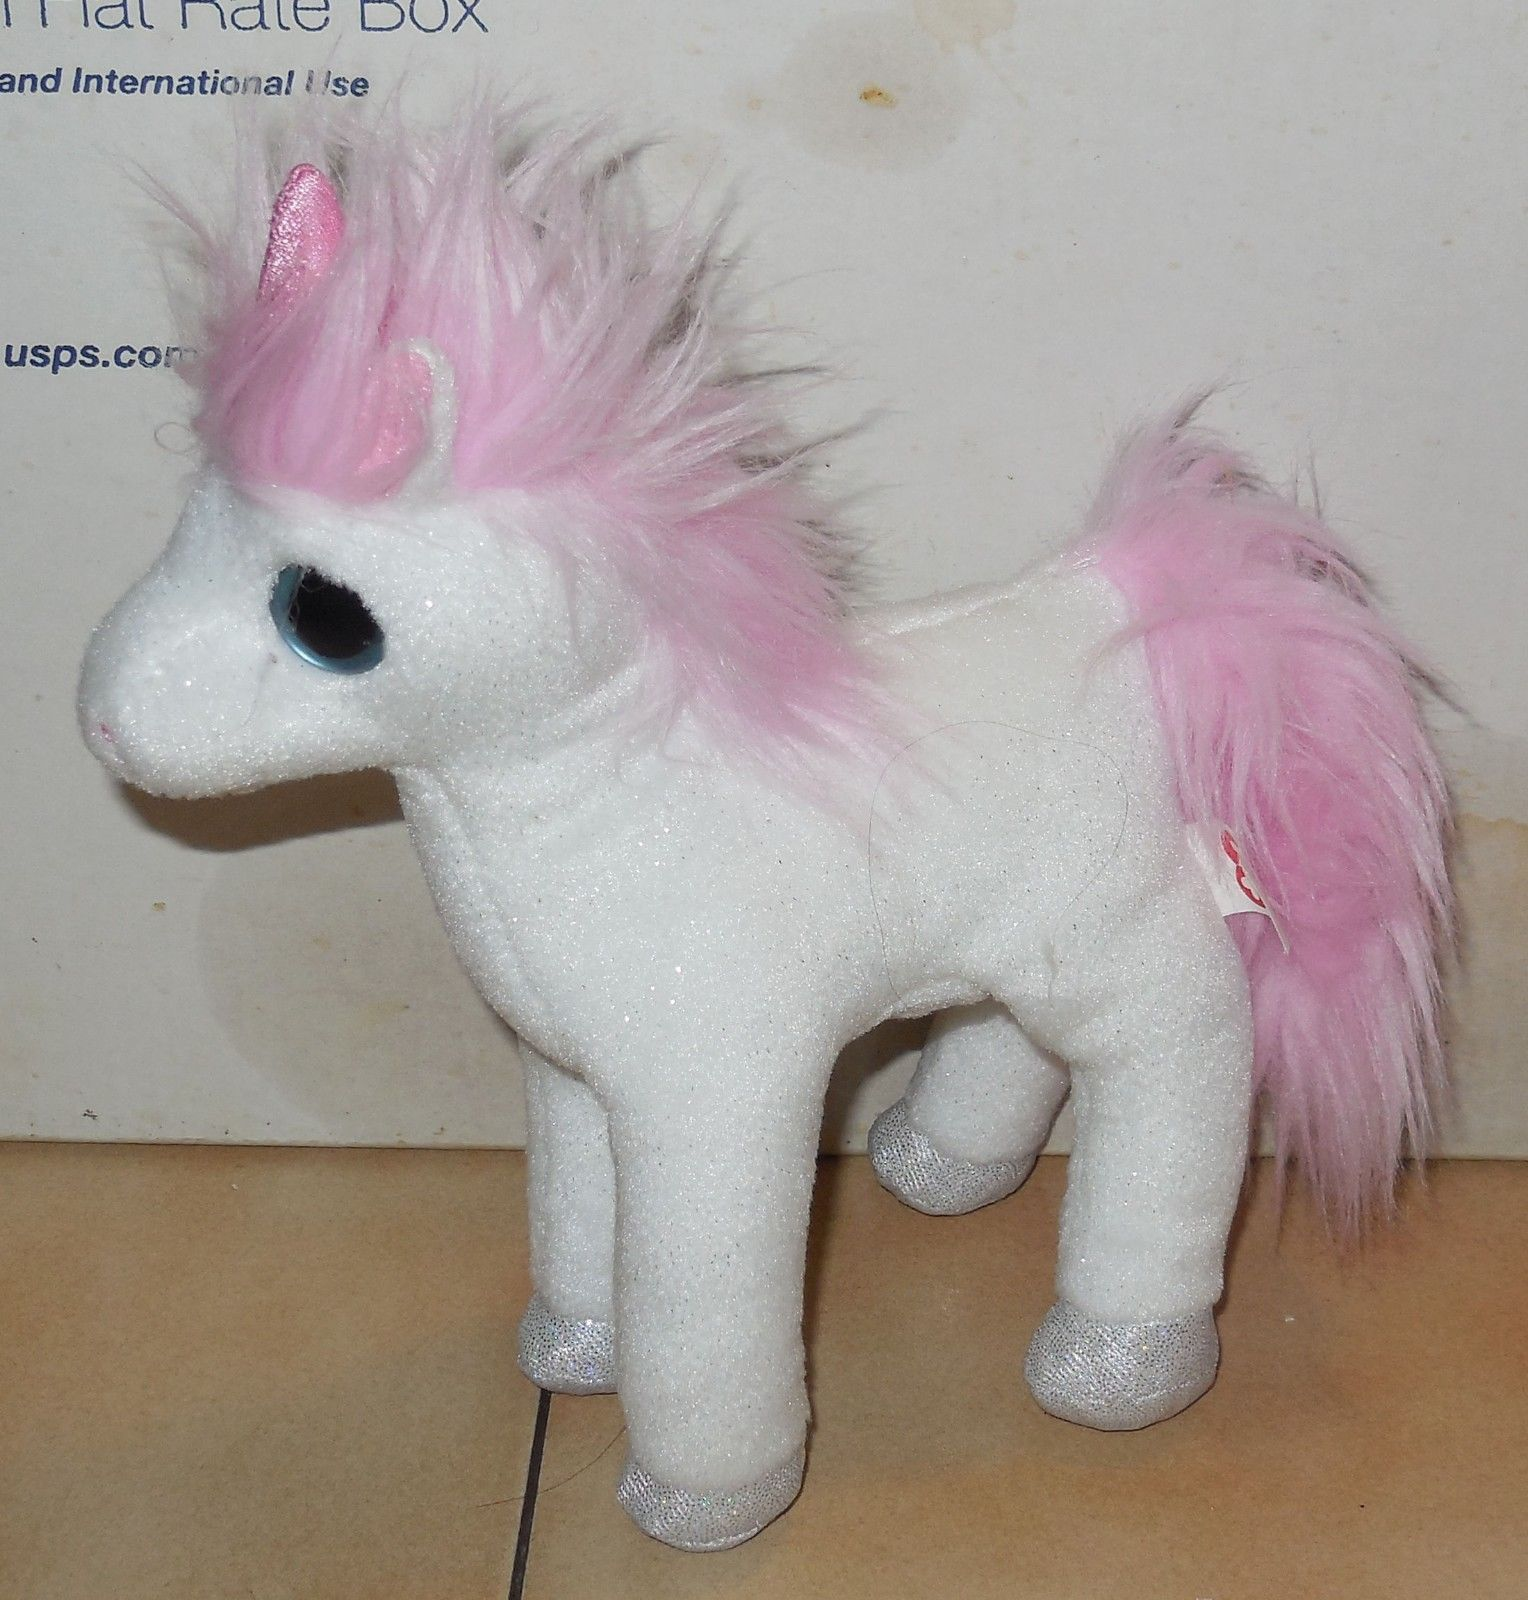 855b2503e7b 21 Beanie Babies That Are Now Worth An Absolute Fortune ... Mystic the  Unicorn.